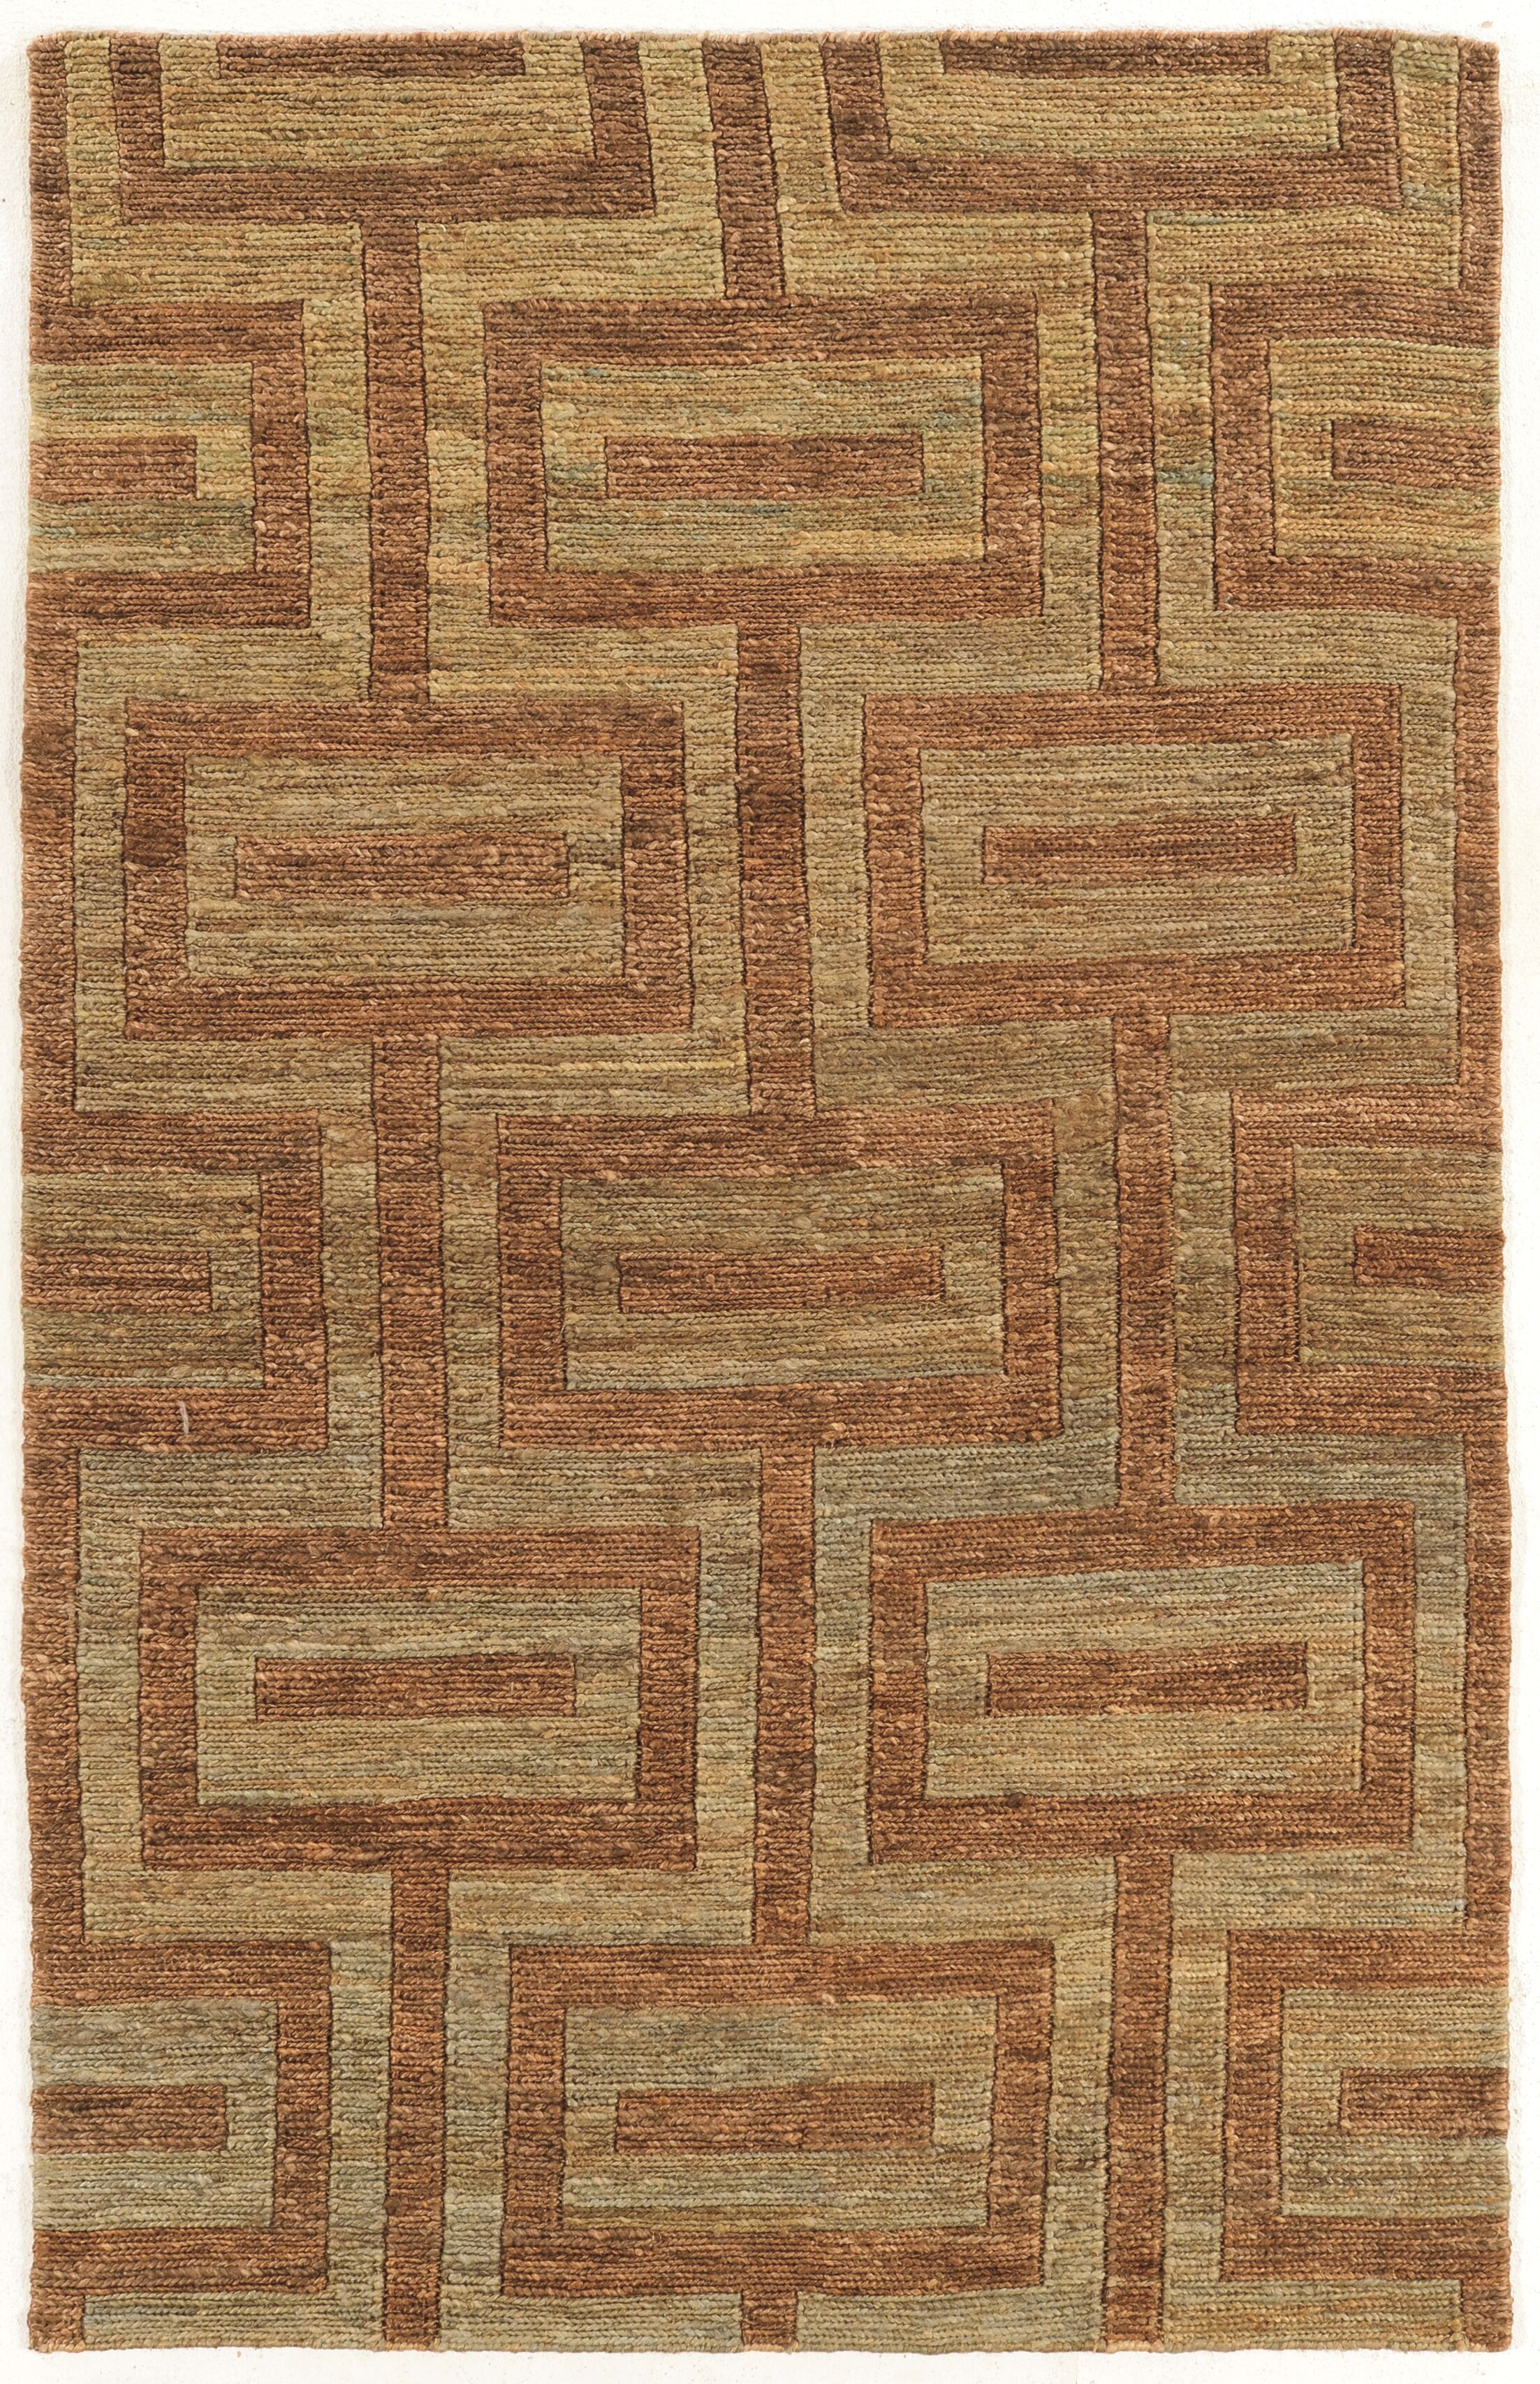 Chloraka Hand-Knotted Beige/Russet Area Rug Rug Size: Rectangle 8' x 11'